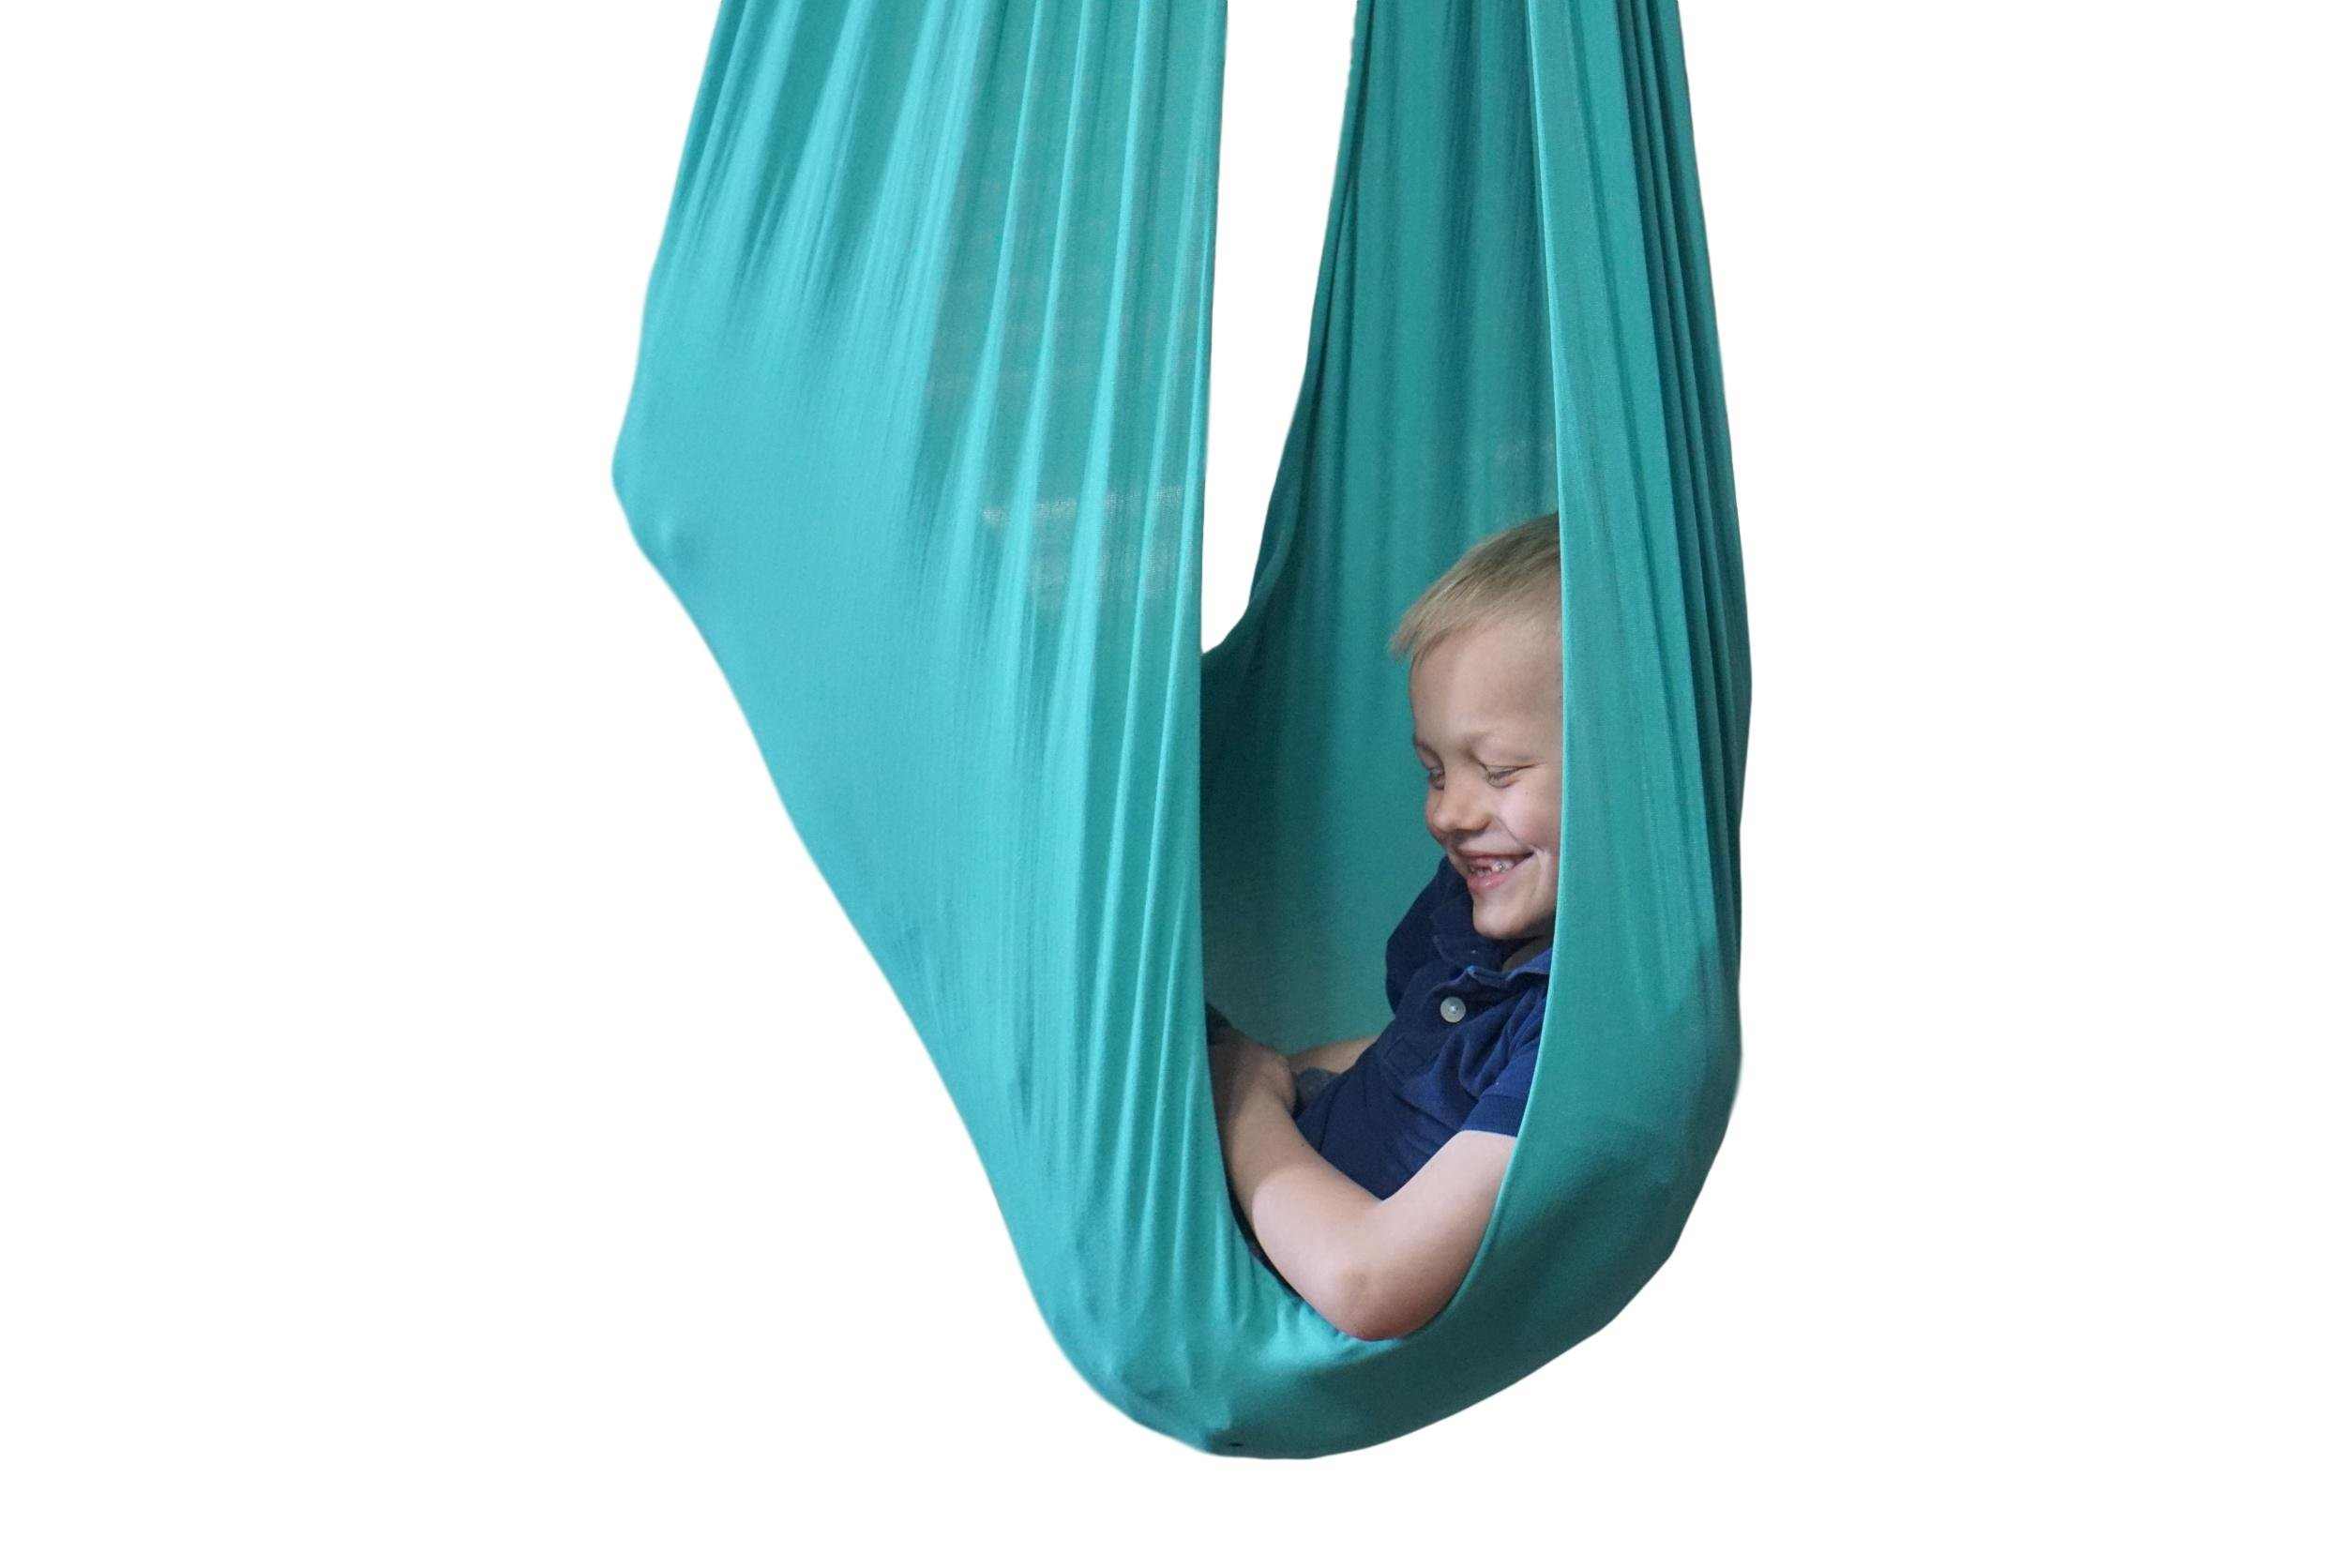 Indoor Therapy Swing for Kids with Special Needs by Sensory4u (Hardware Included) Snuggle Swing | Cuddle Hammock for Children with Autism, ADHD, Aspergers | Great for Sensory Integration (Aqua Color)